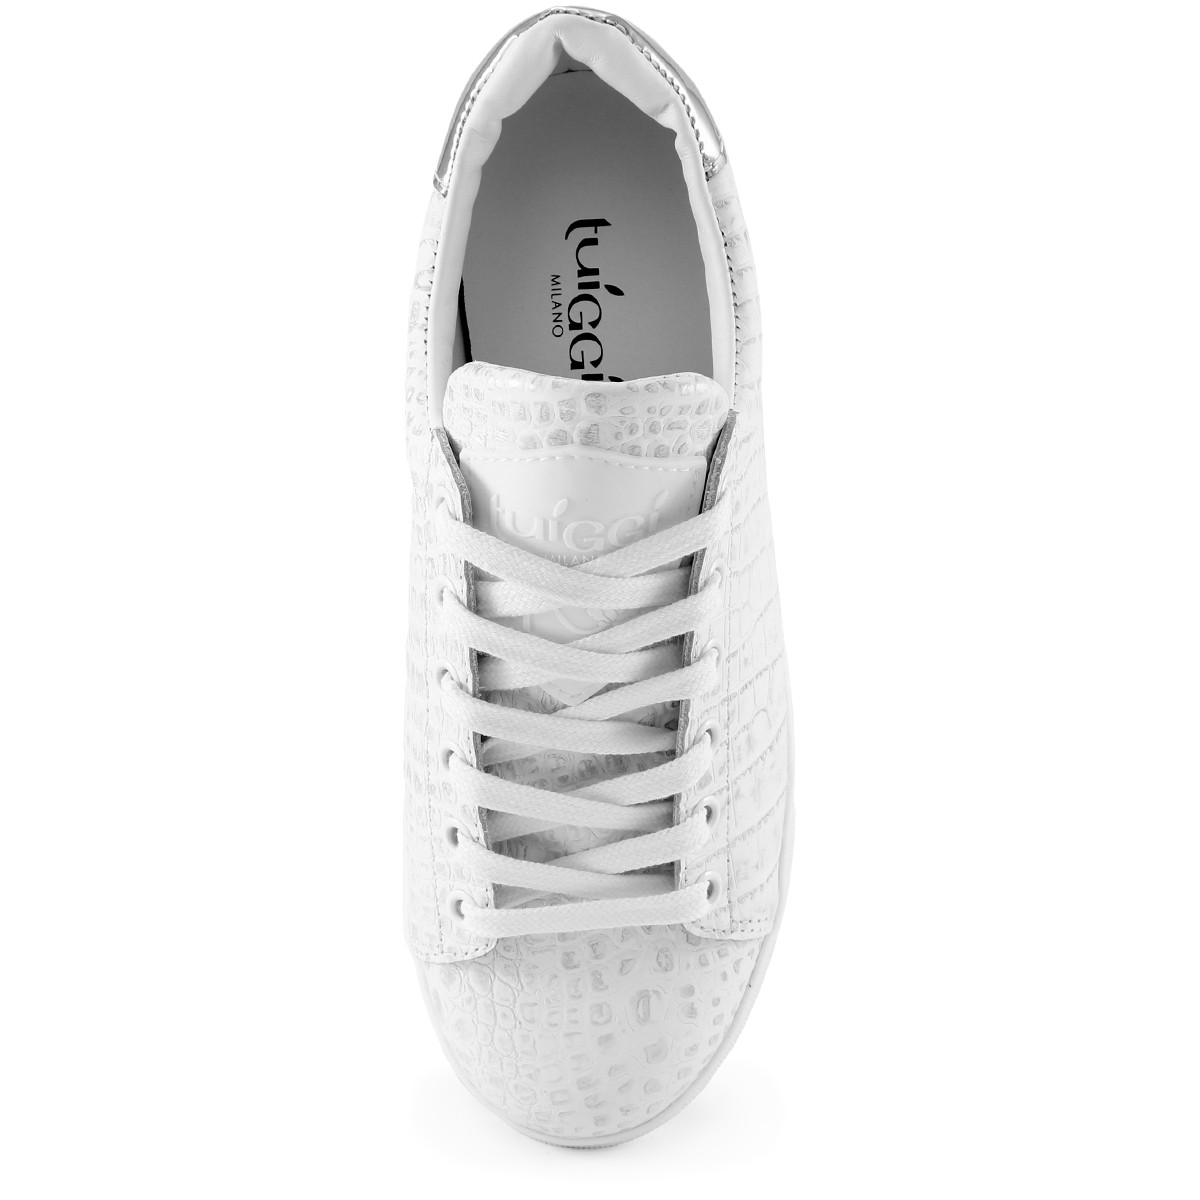 "SNEAKERS ""COCCO"" BIANCO"